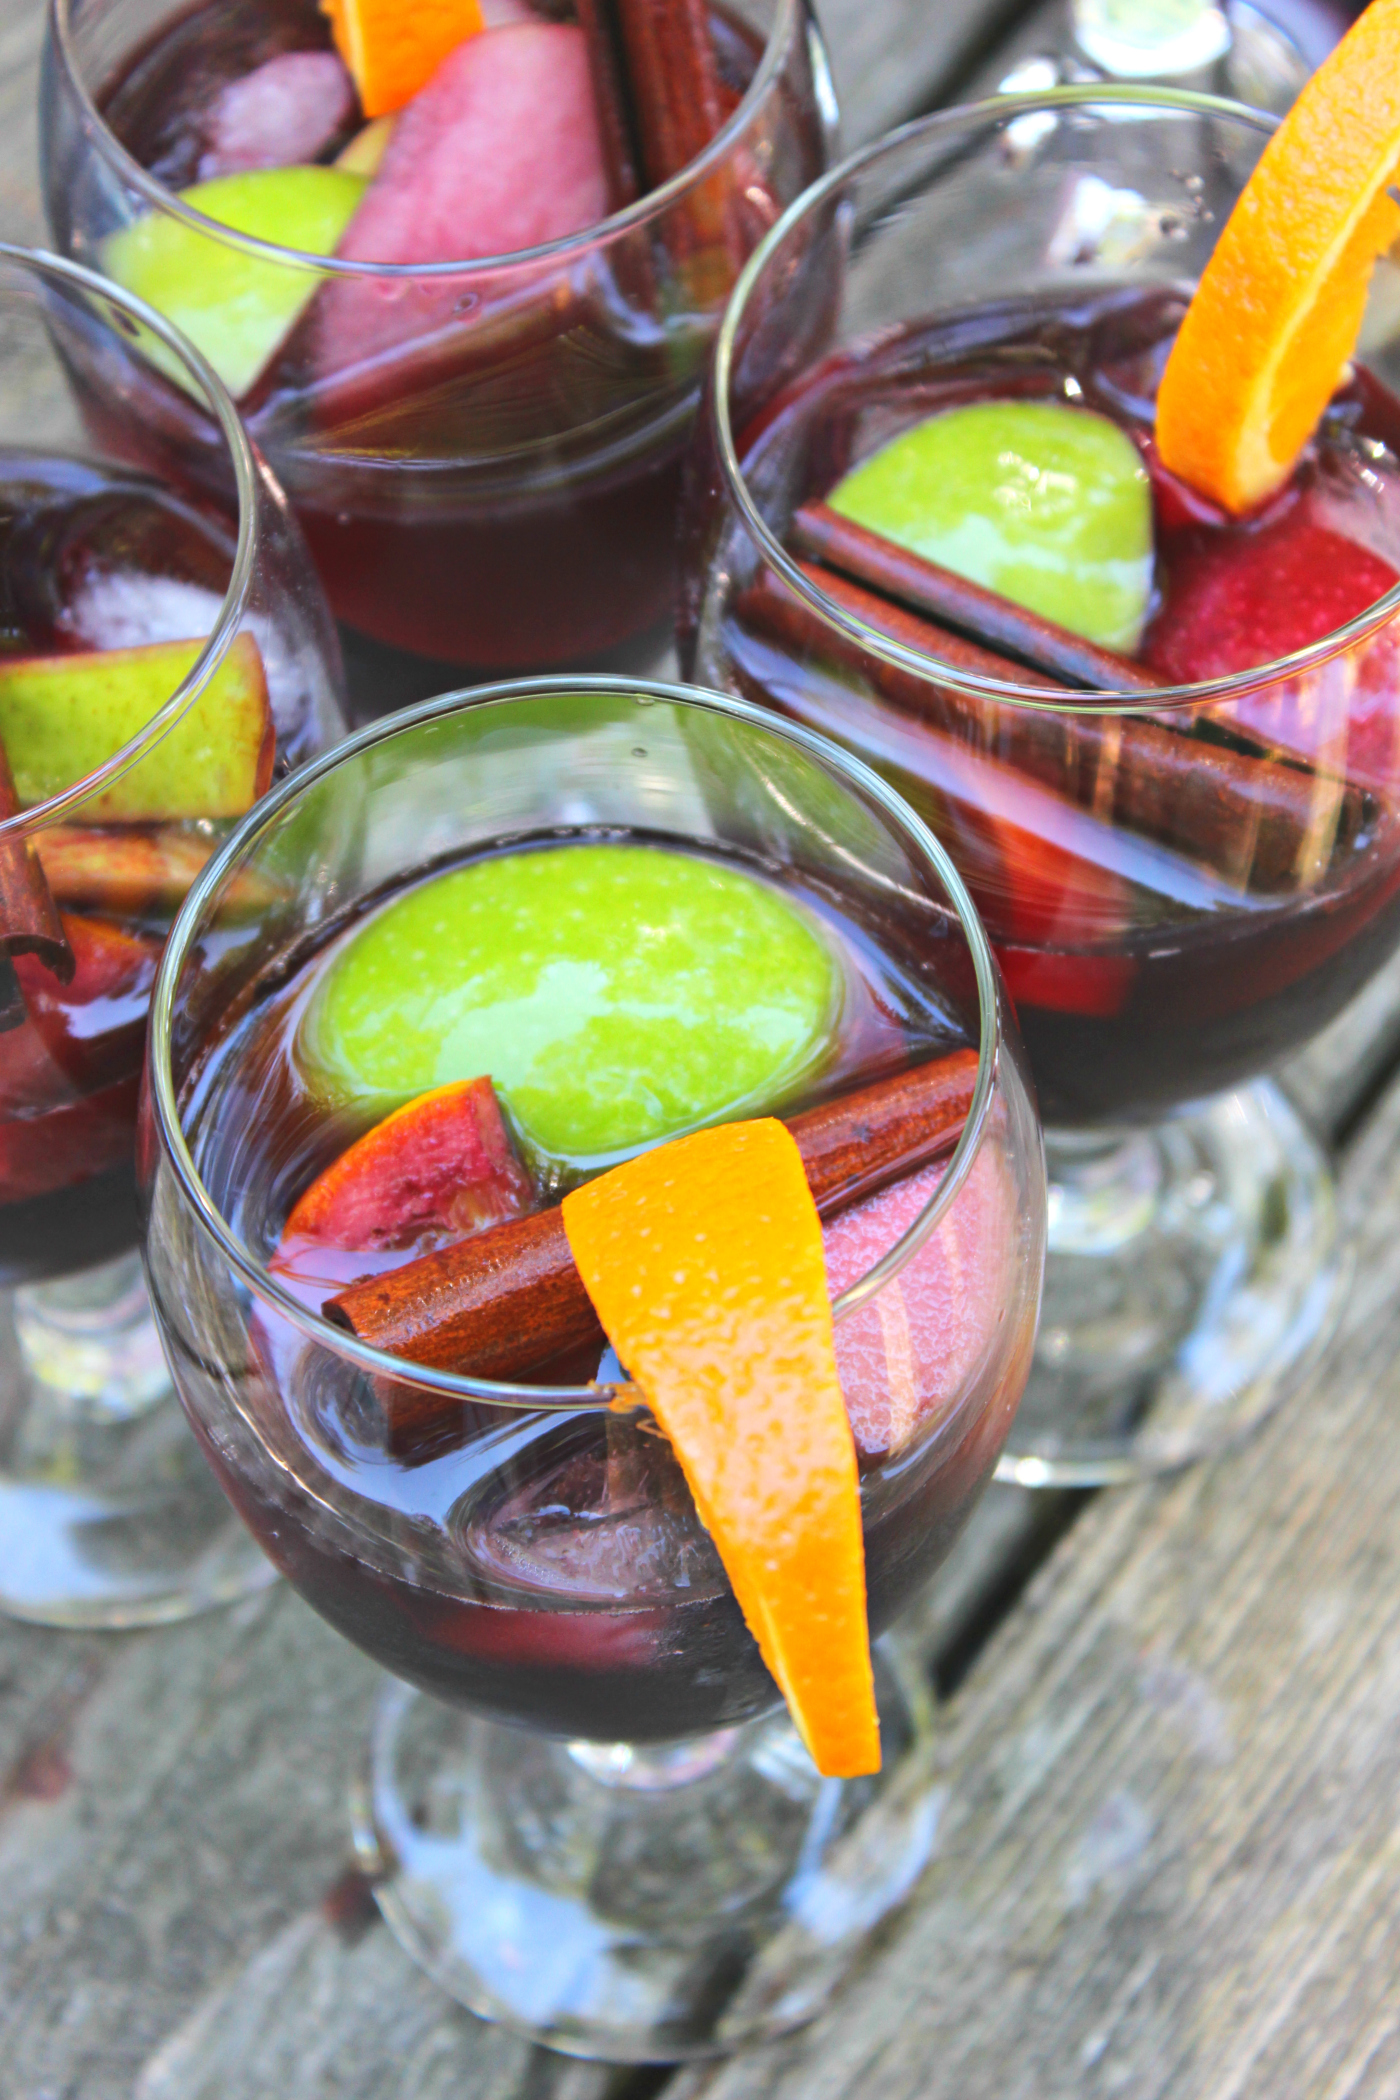 Easy Cinnamon Apple Autumn Sangria recipe with apples, pears, and oranges